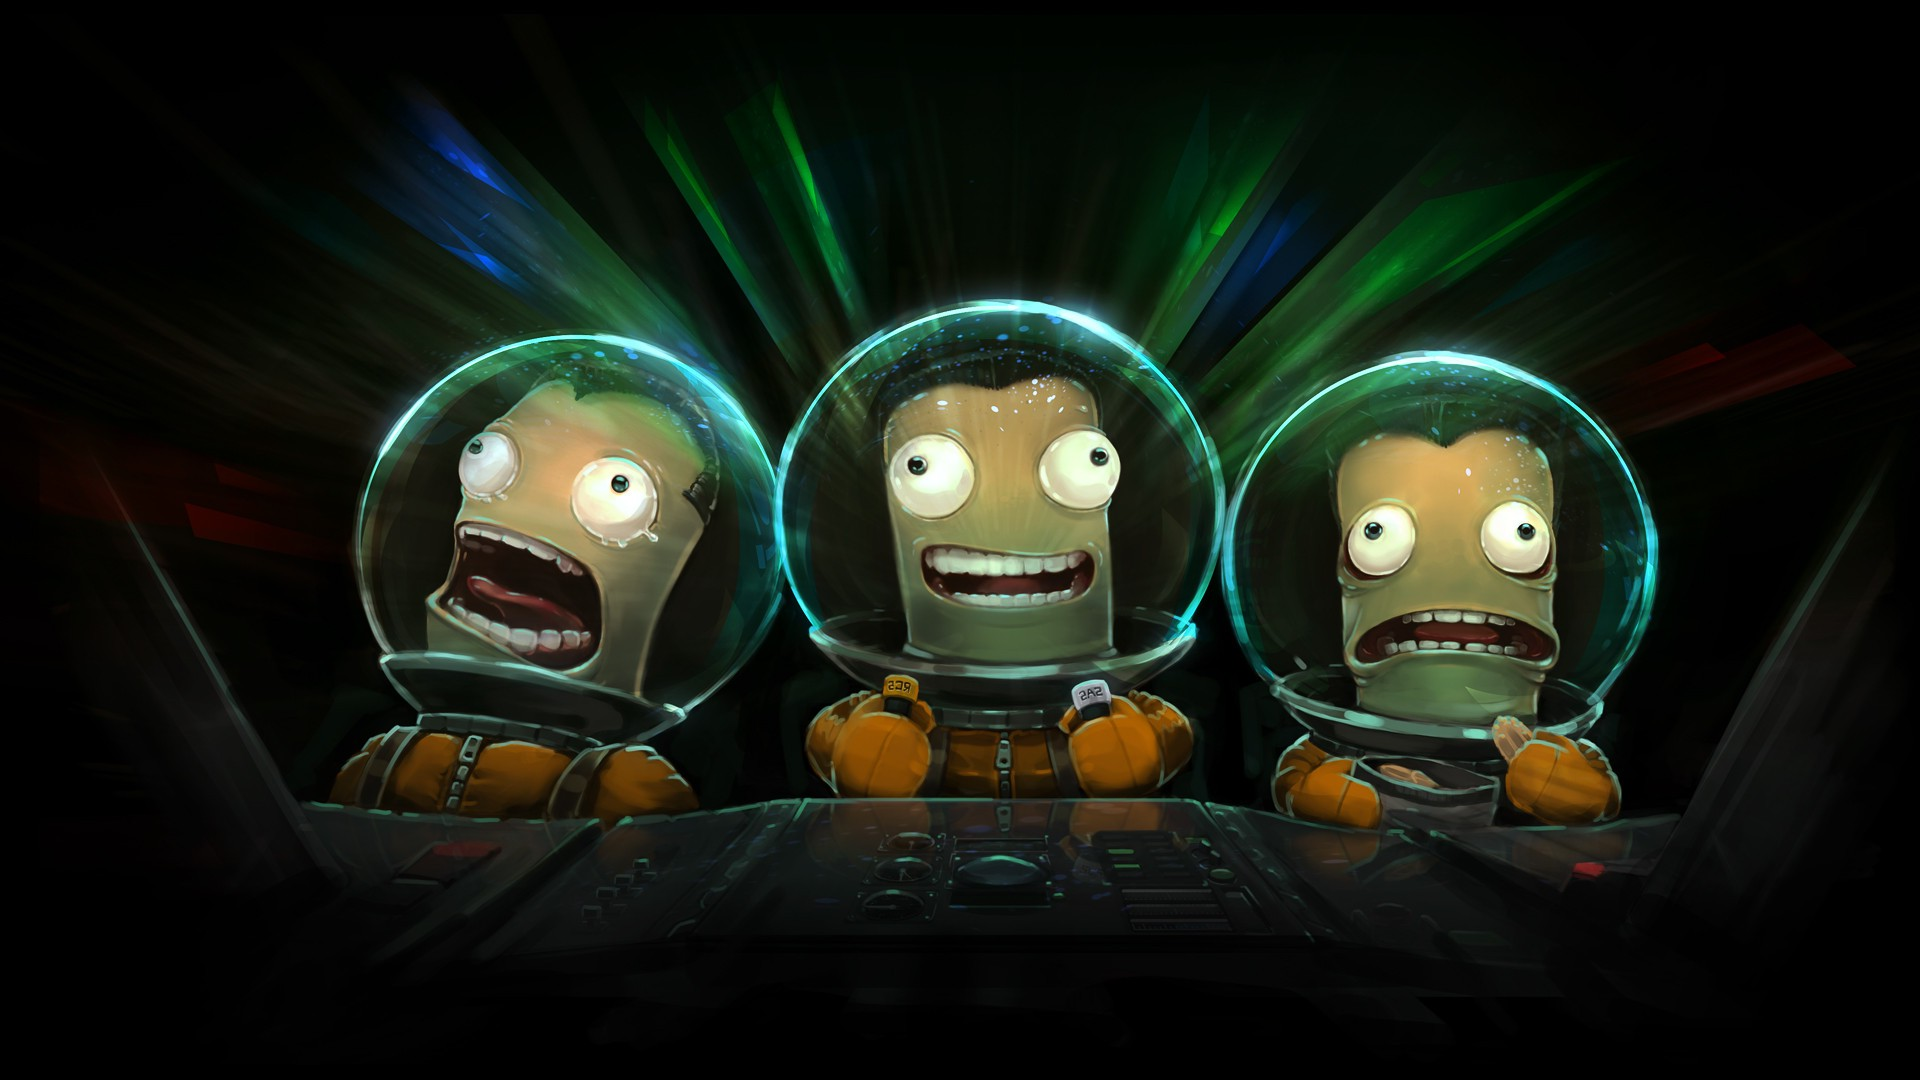 Kerbal Space Program Kerman 101092 Hd Wallpaper